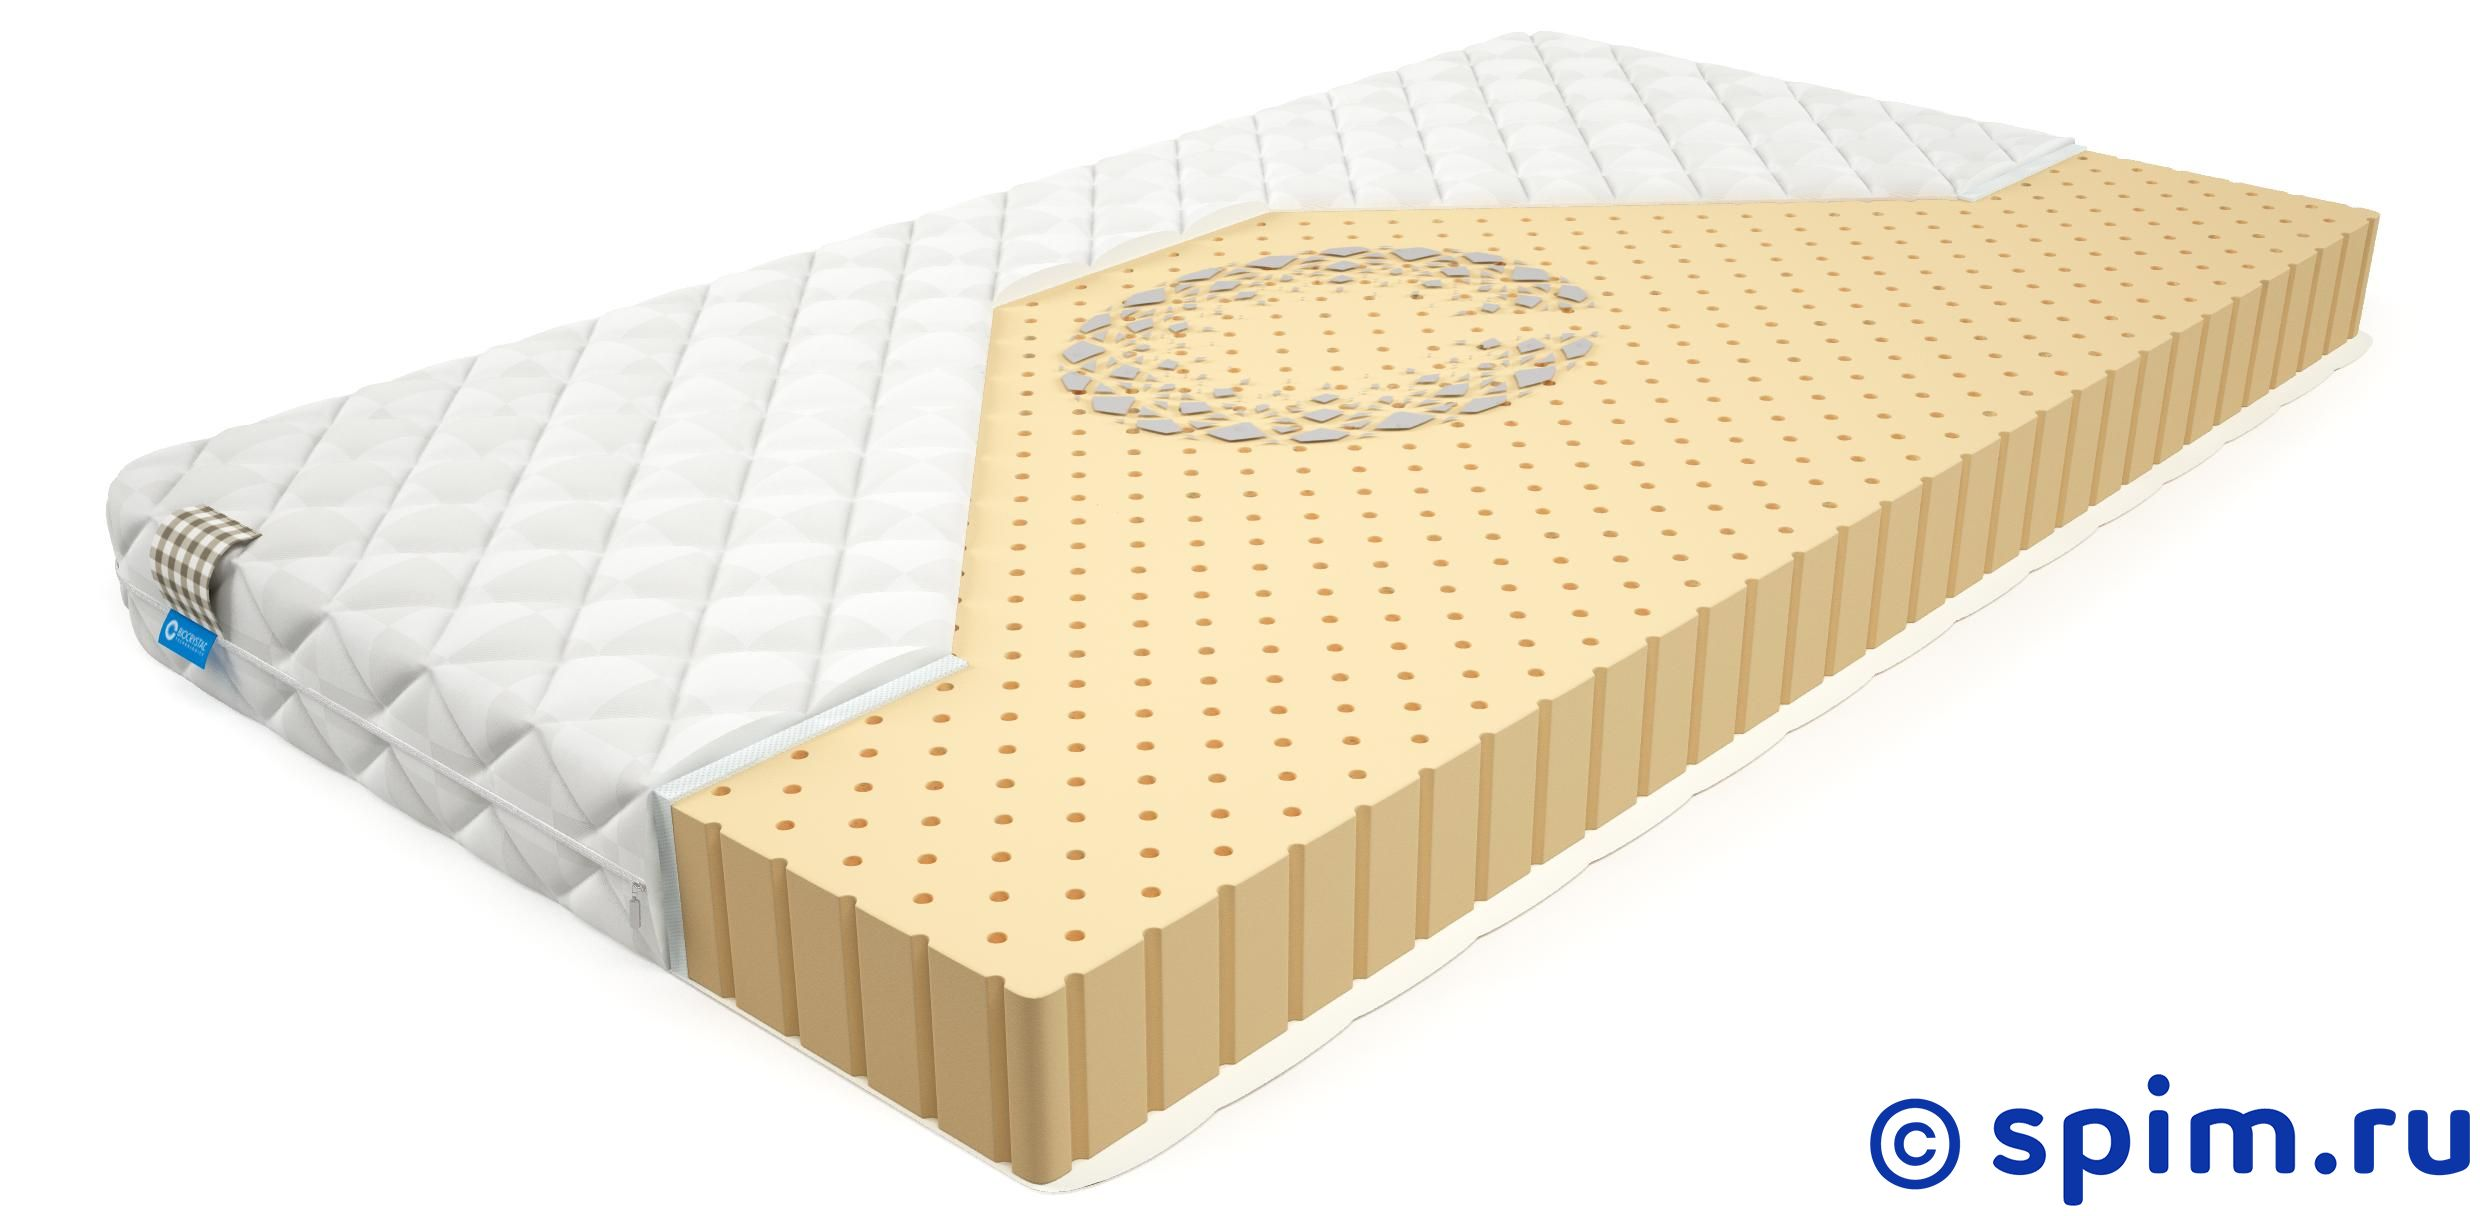 Купить Матрас Mr.Mattress Foxton L 120х195 см